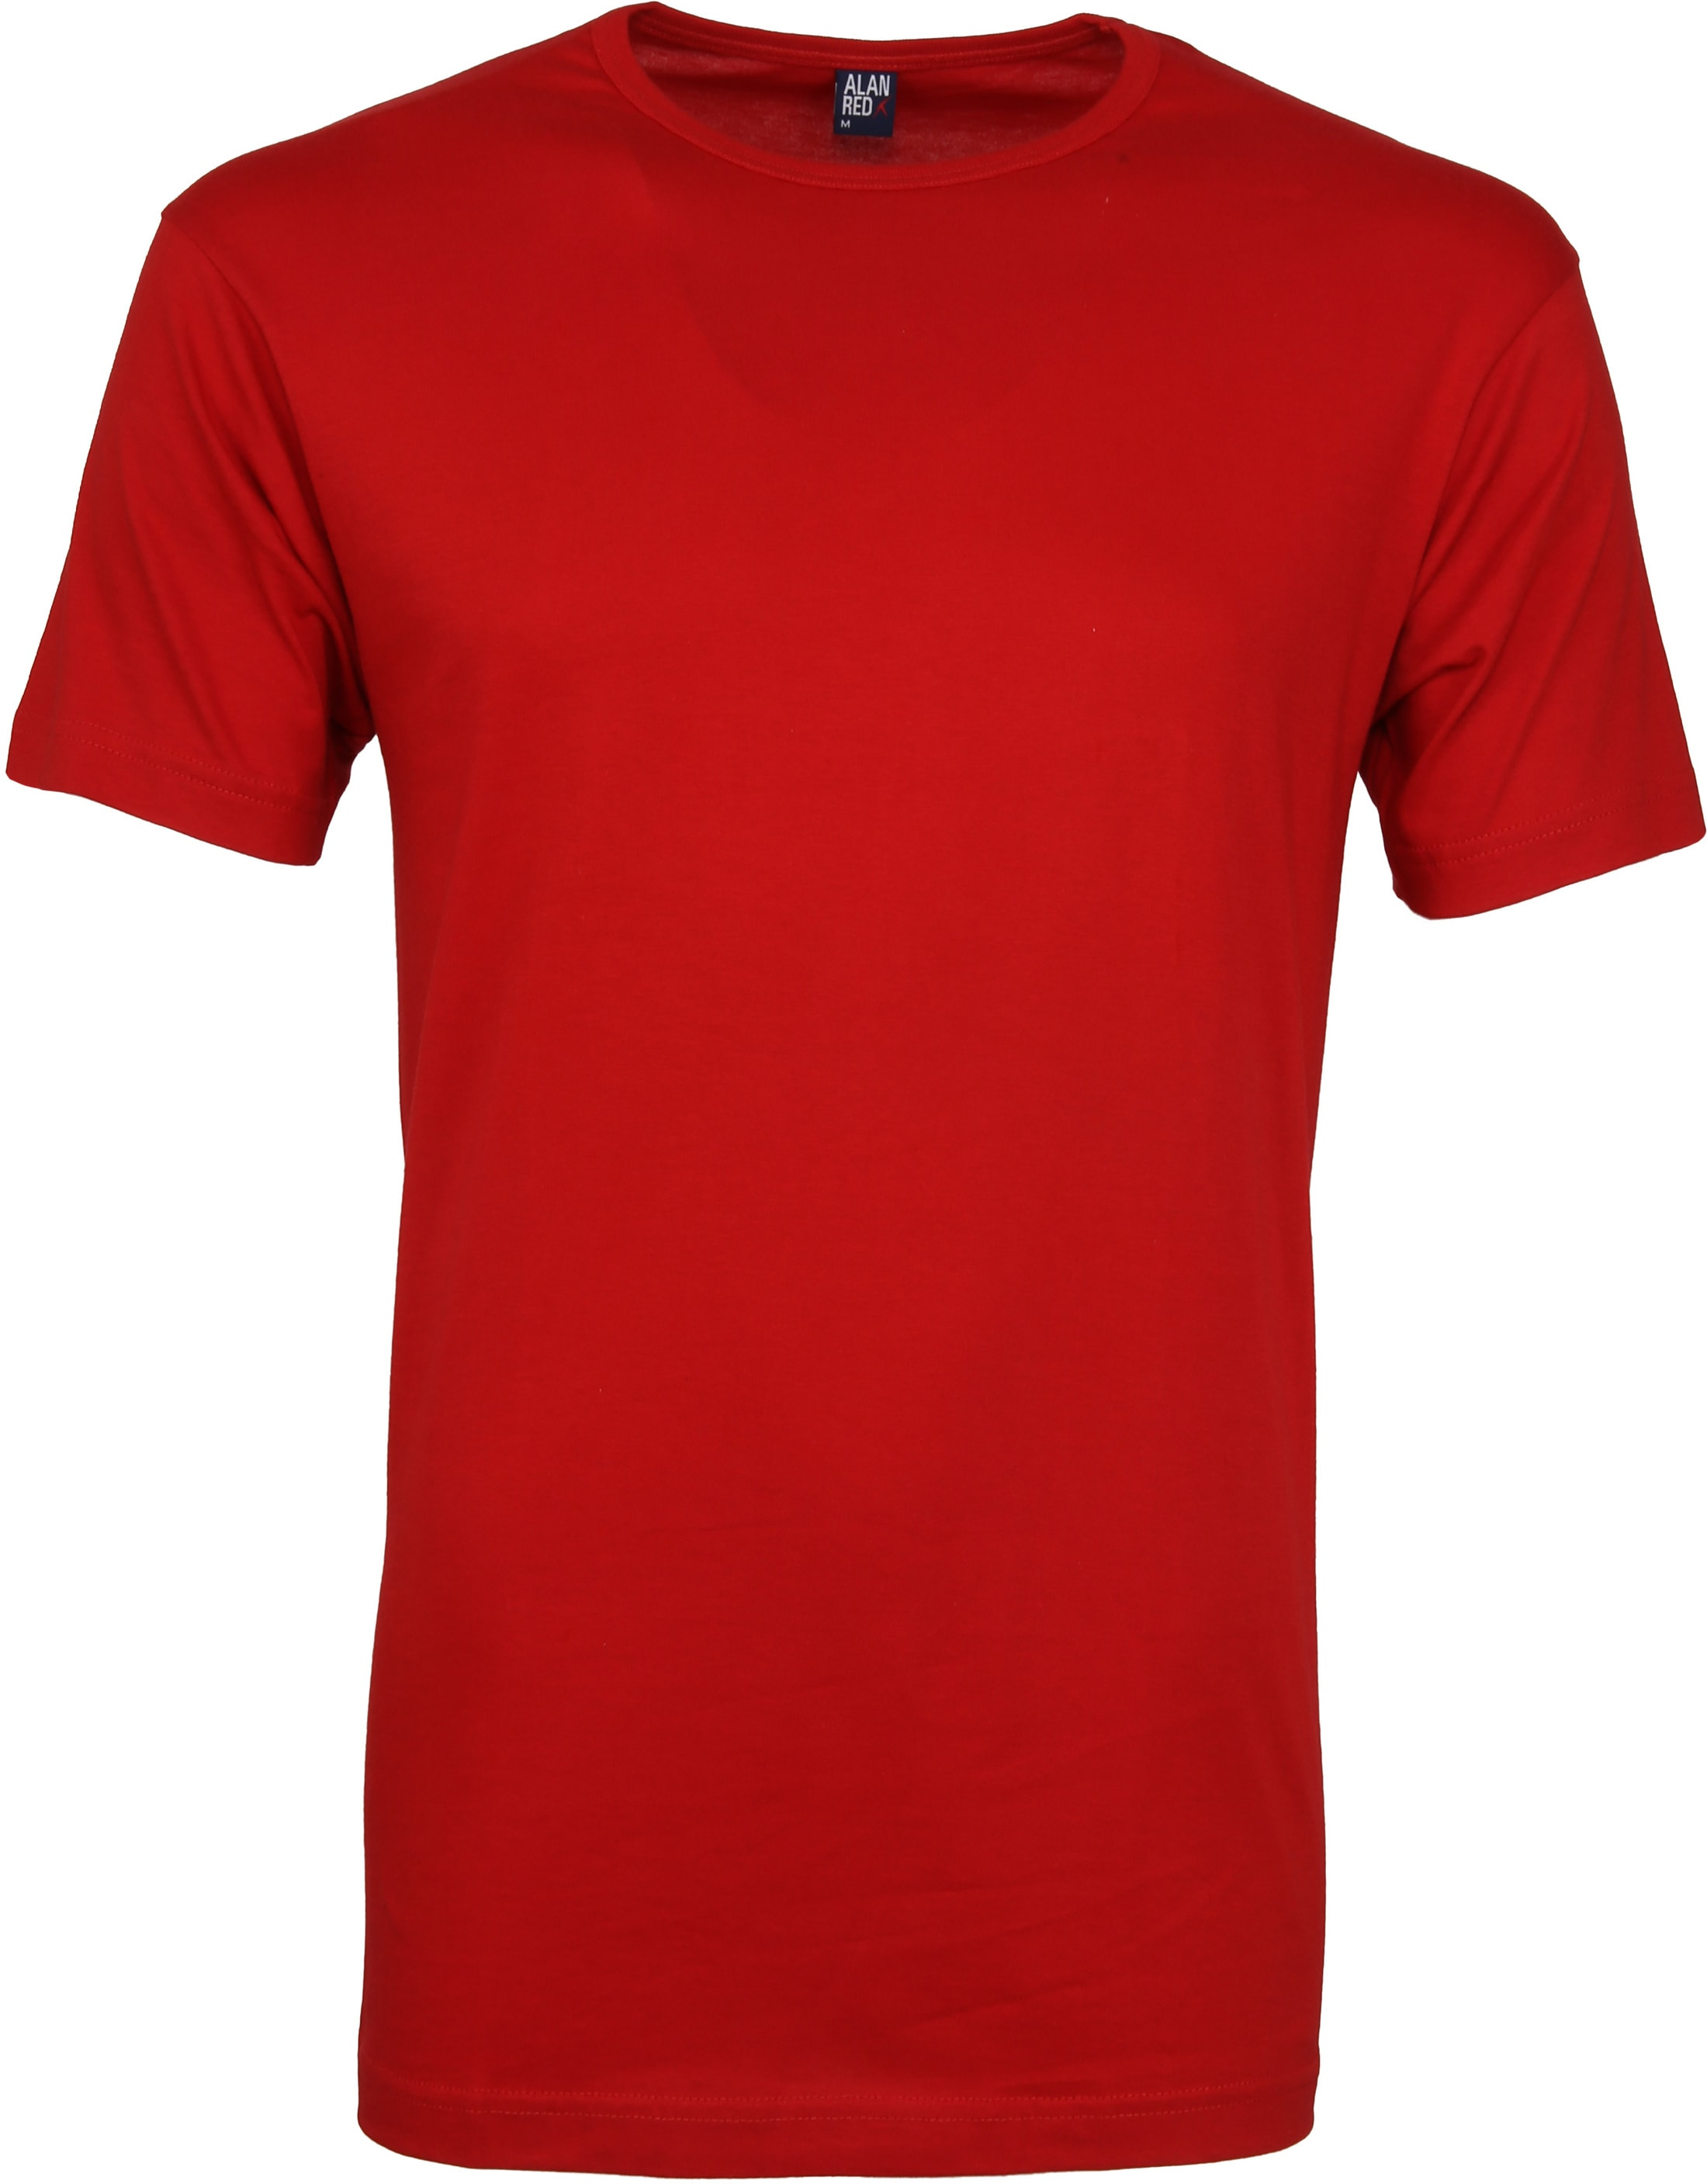 Alan Red Derby O-Hals T-Shirt Stone Red (2Pack) foto 1